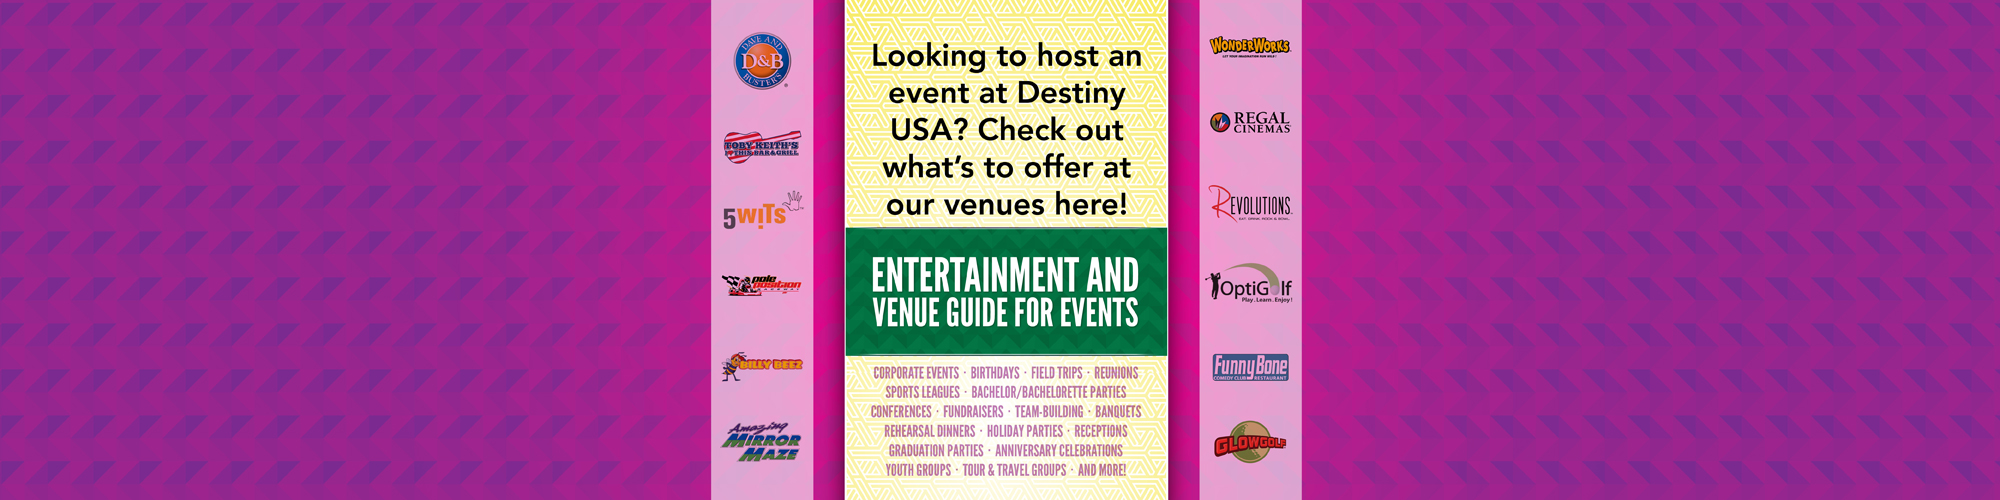 Entertainment and Venue Guide for Events